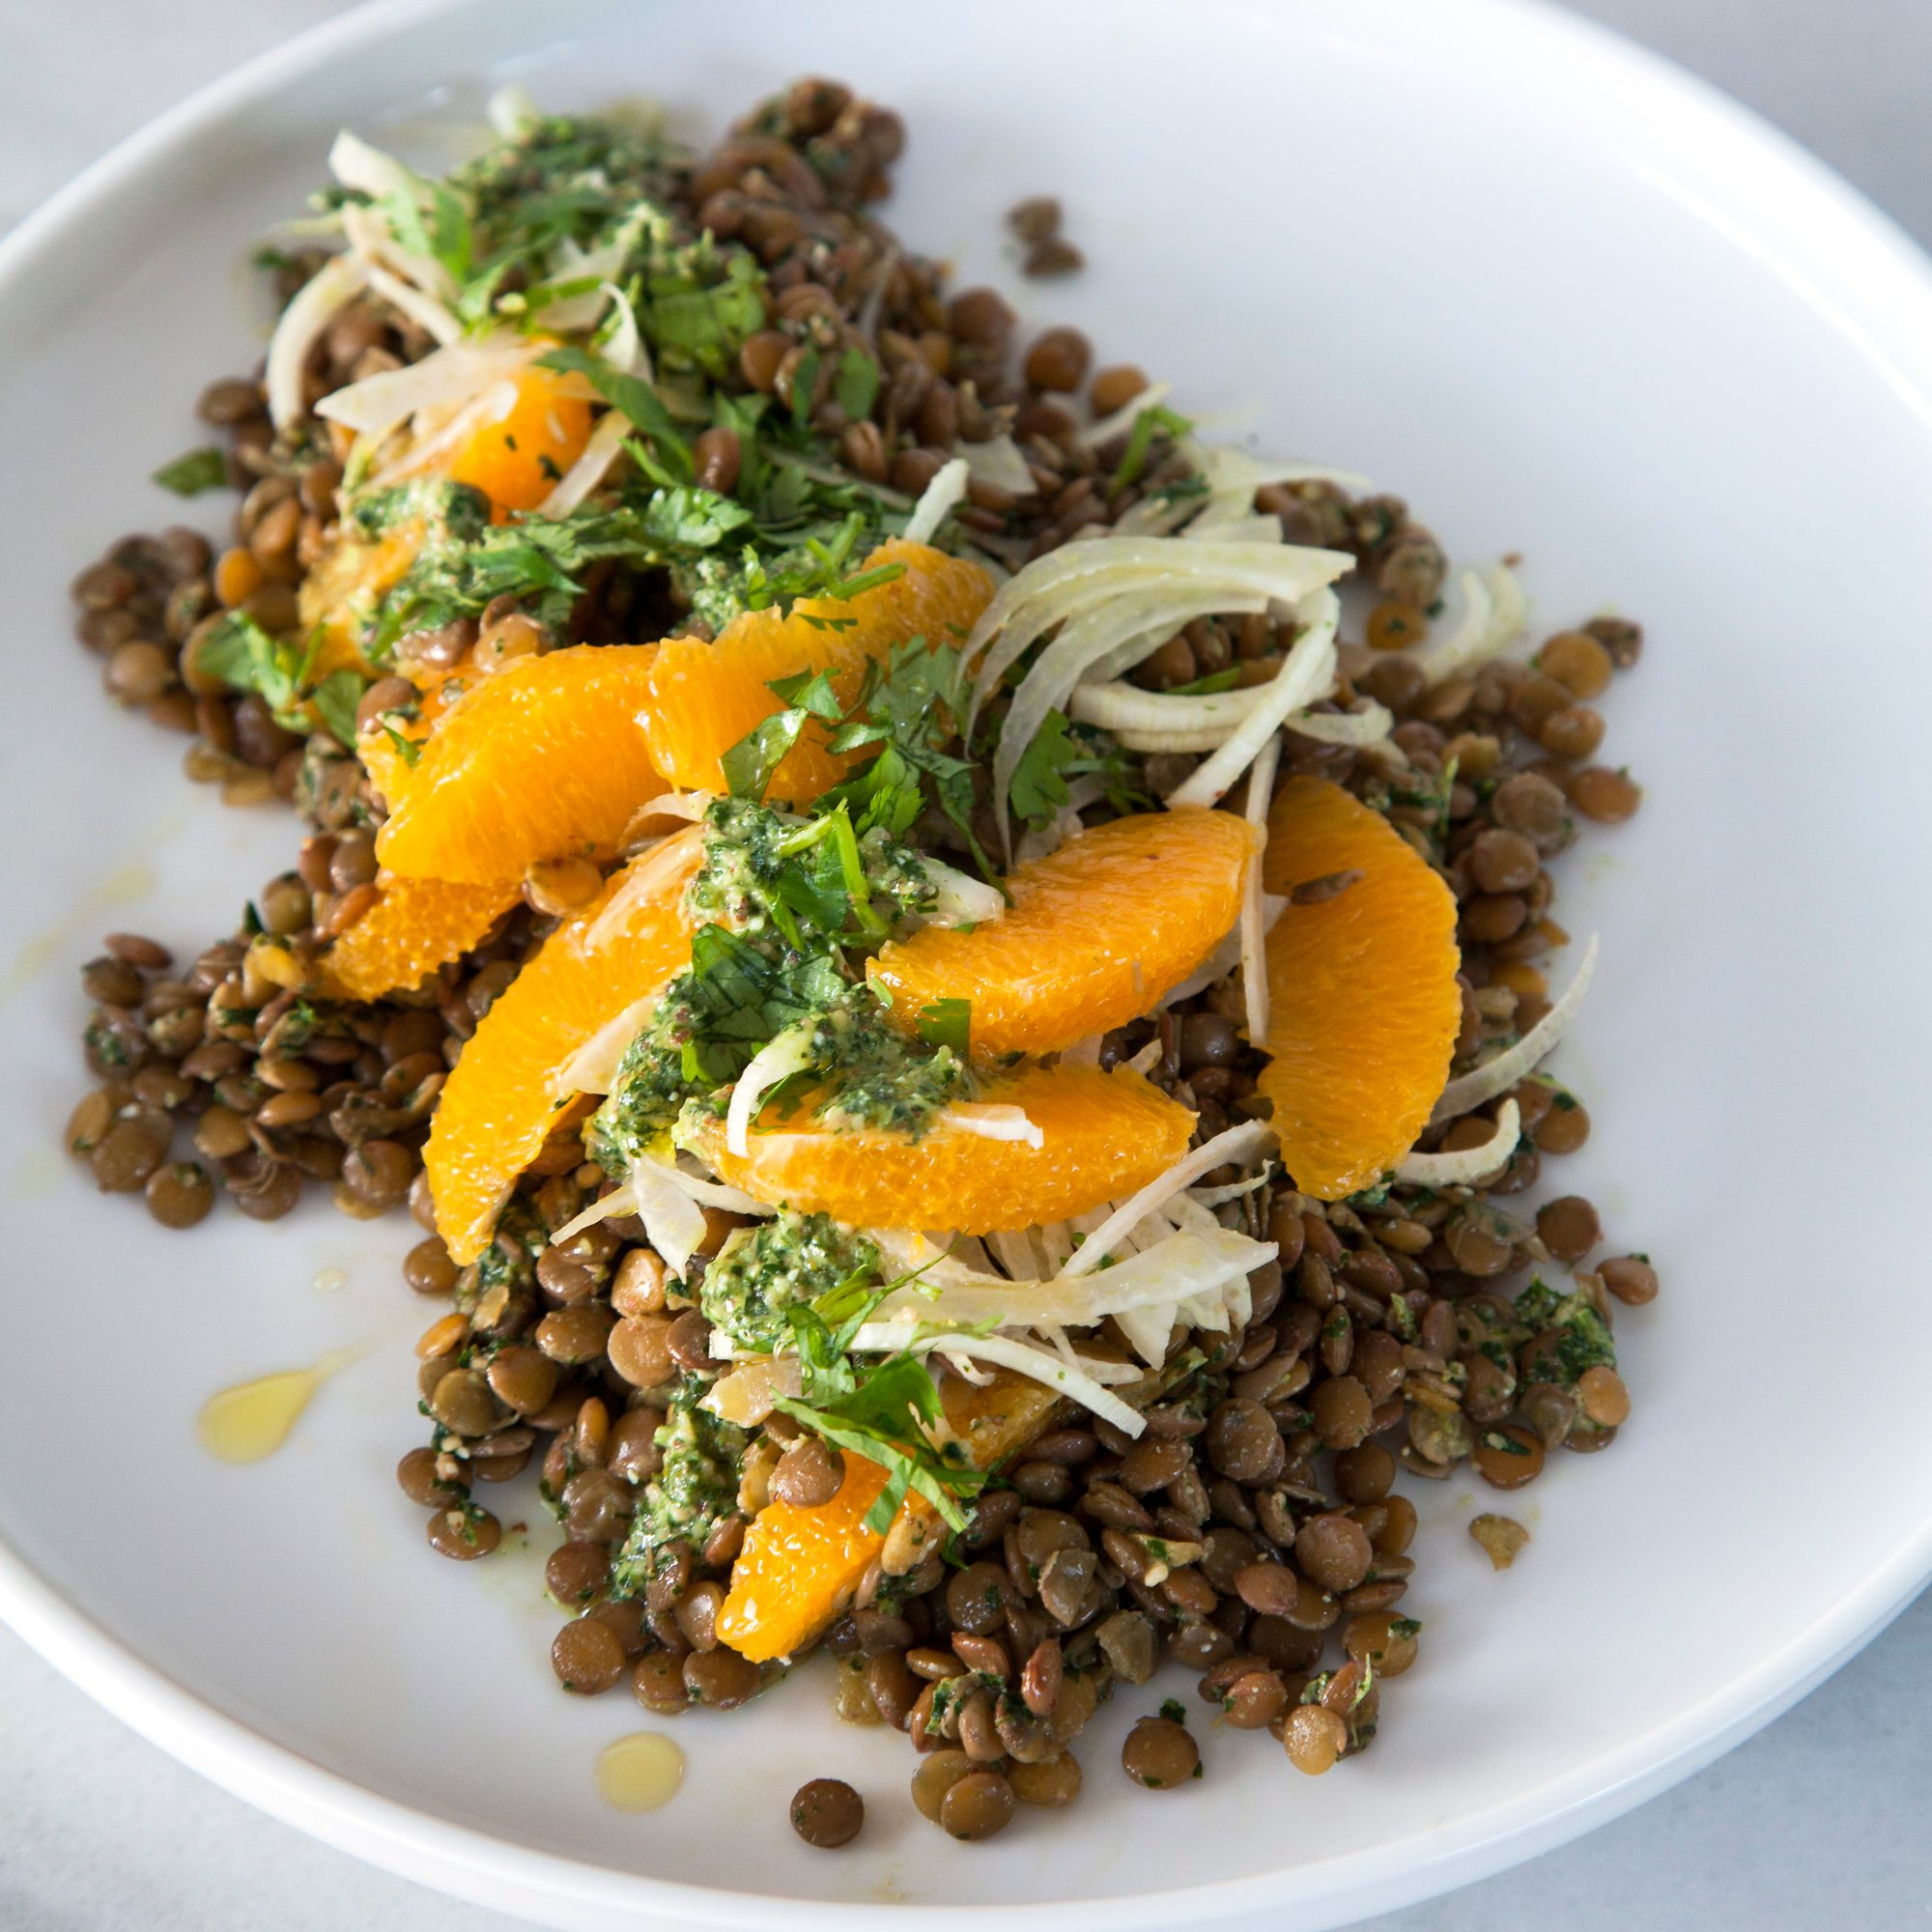 Citrus Lentil Salad with Kale Pesto